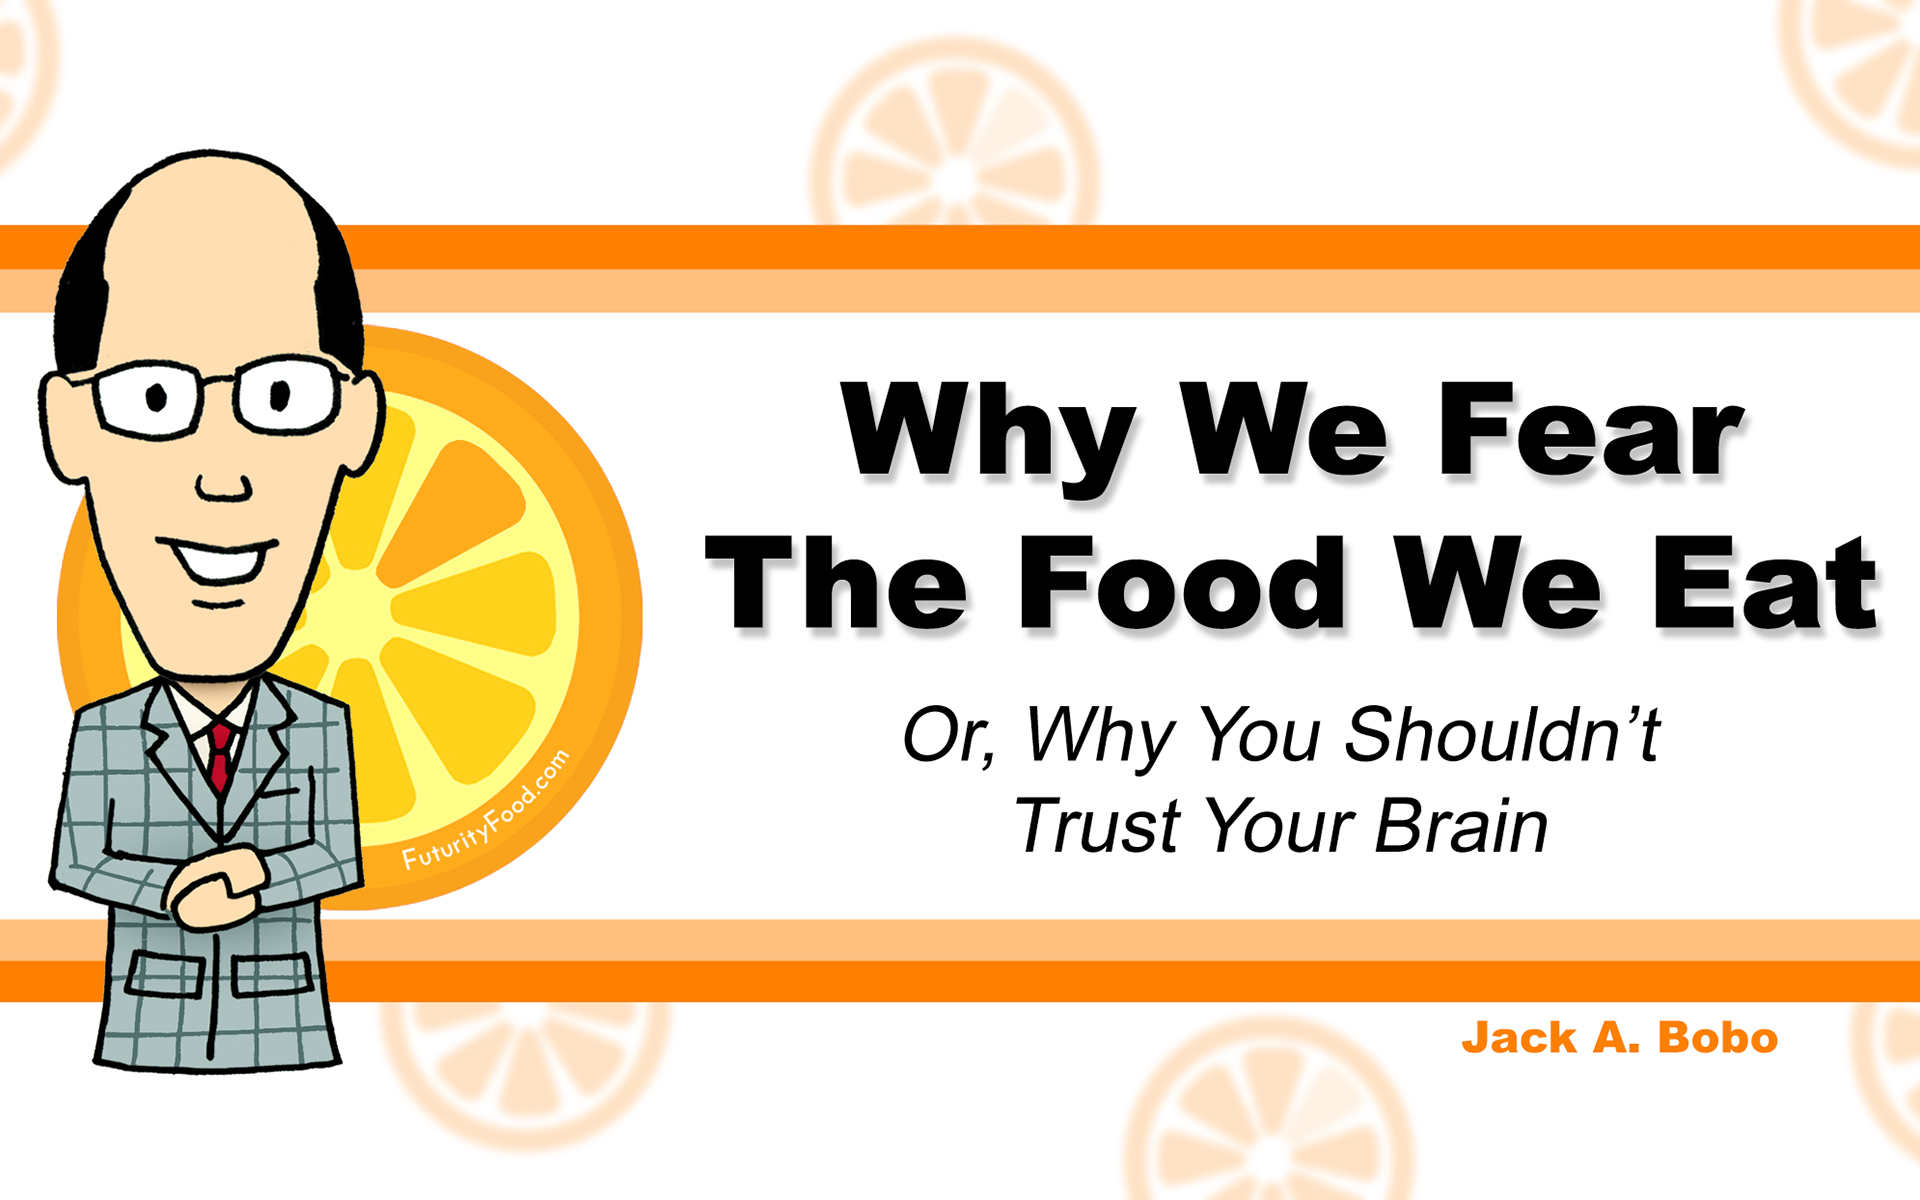 Why We Fear The Food We Eat